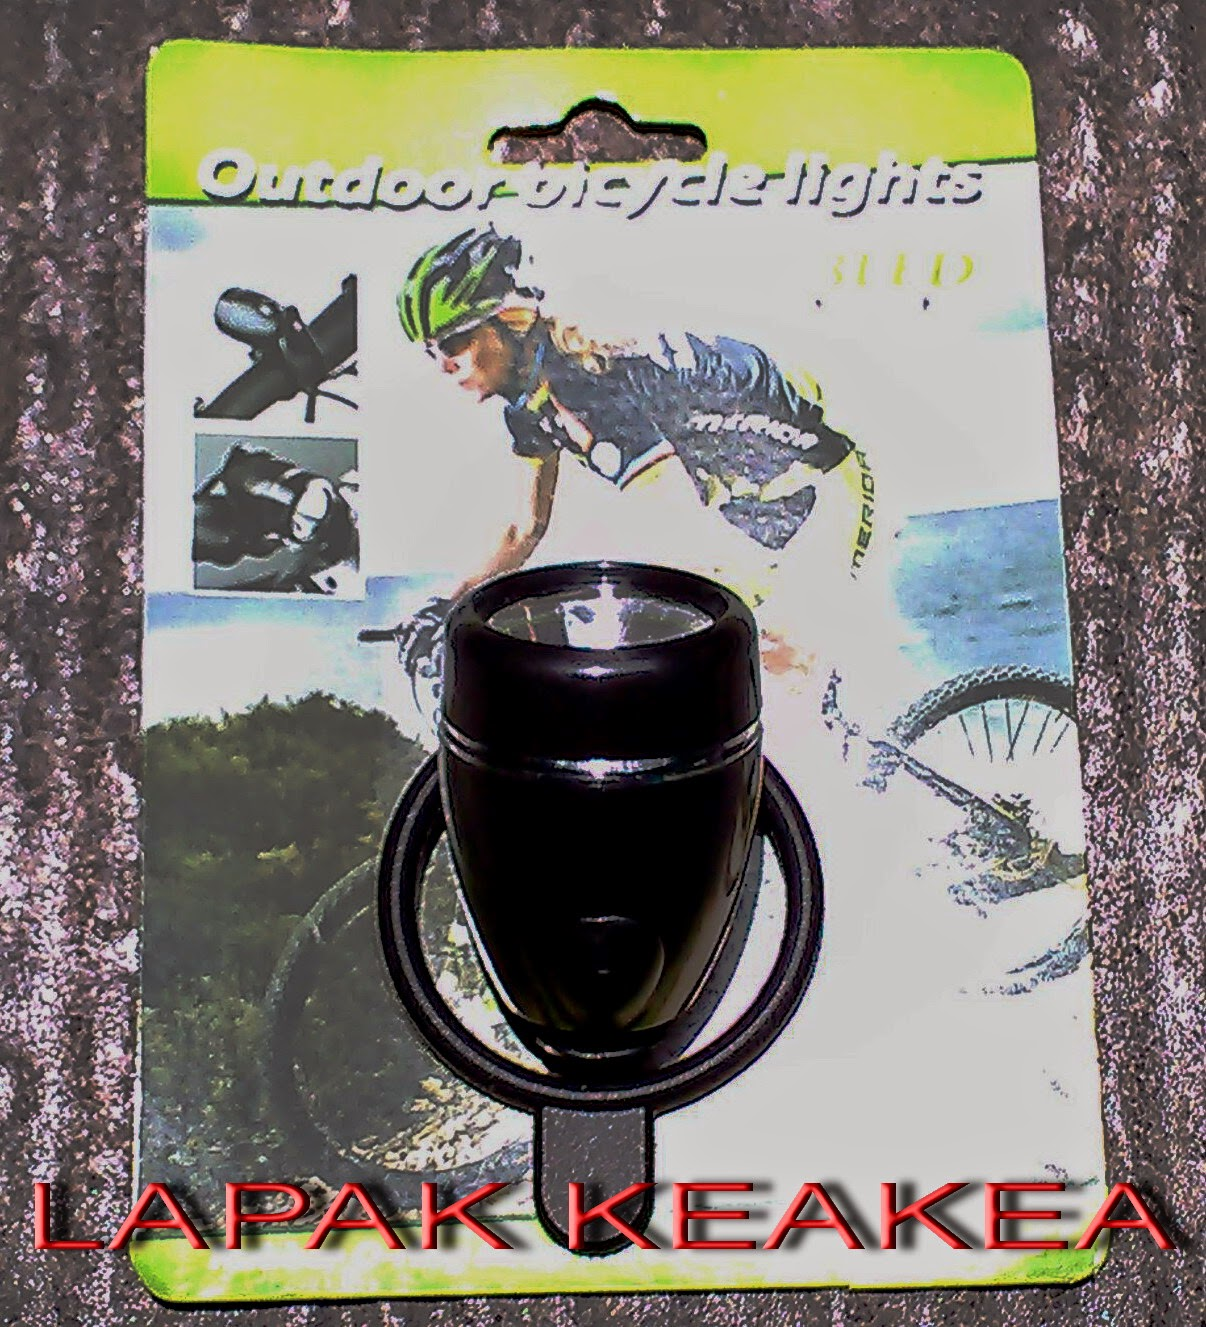 http://lapakkeakea.blogspot.com/search/label/lampu%20depan%20imut